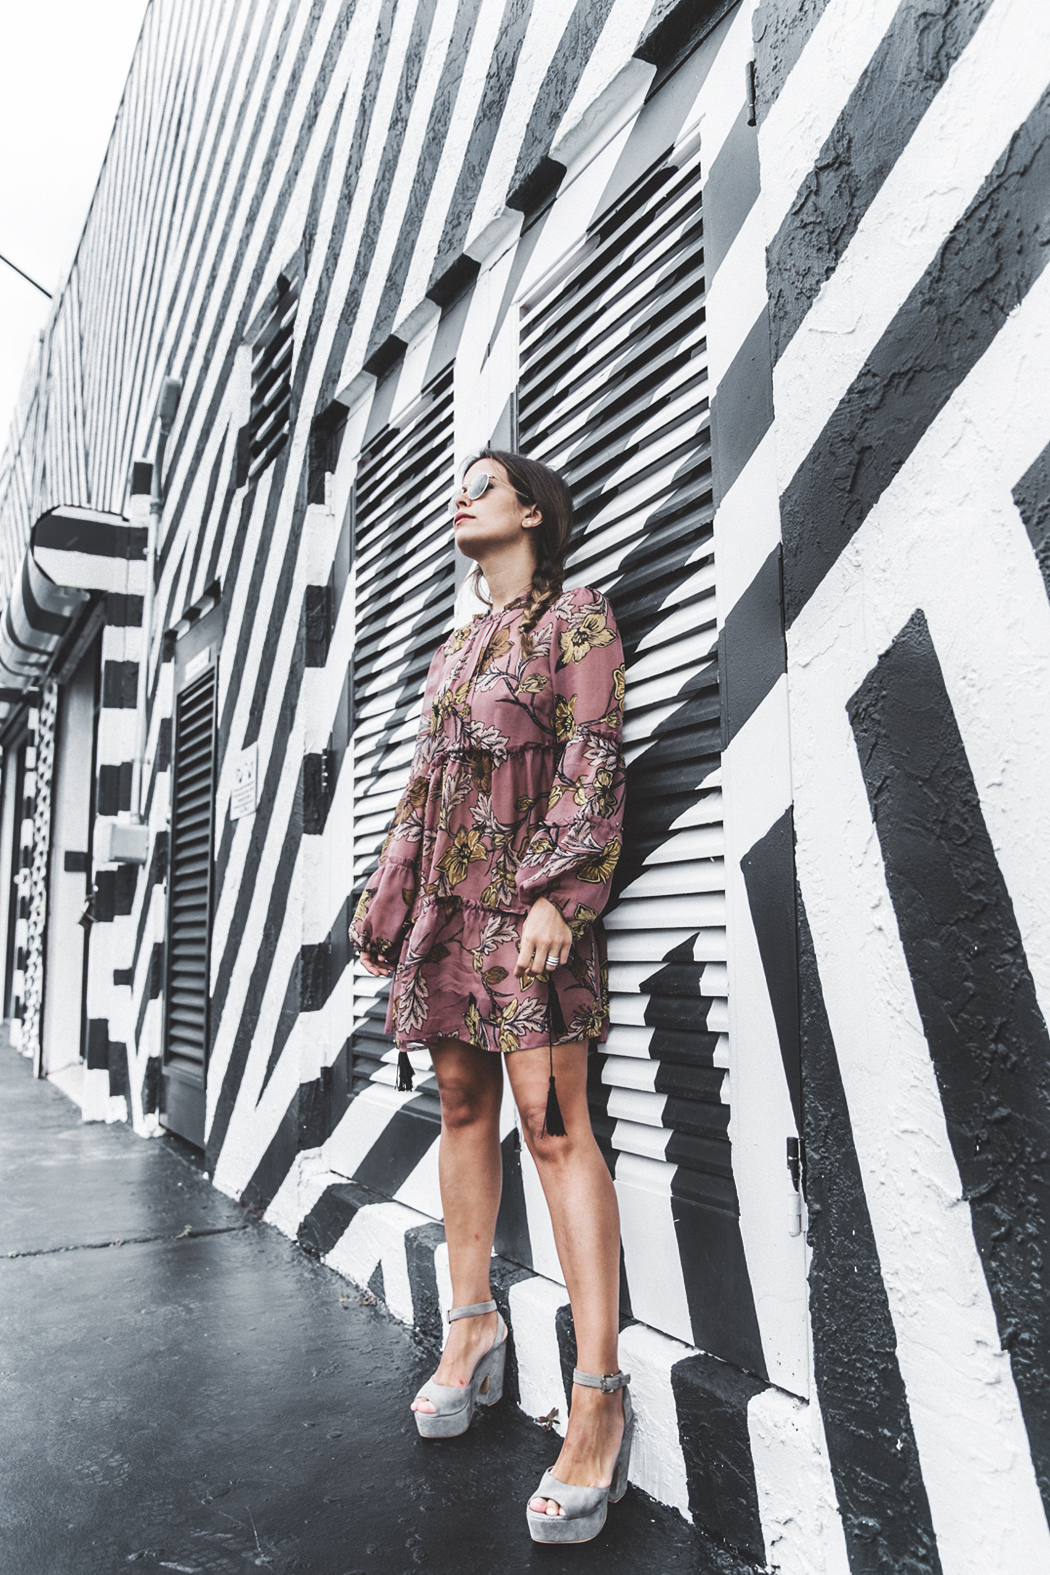 Wynwood-Miami-Black_And_White_Stripes_Wall-For_Love_And_Lemons_Dress-Floral_Print-Wedges-Outfit-23